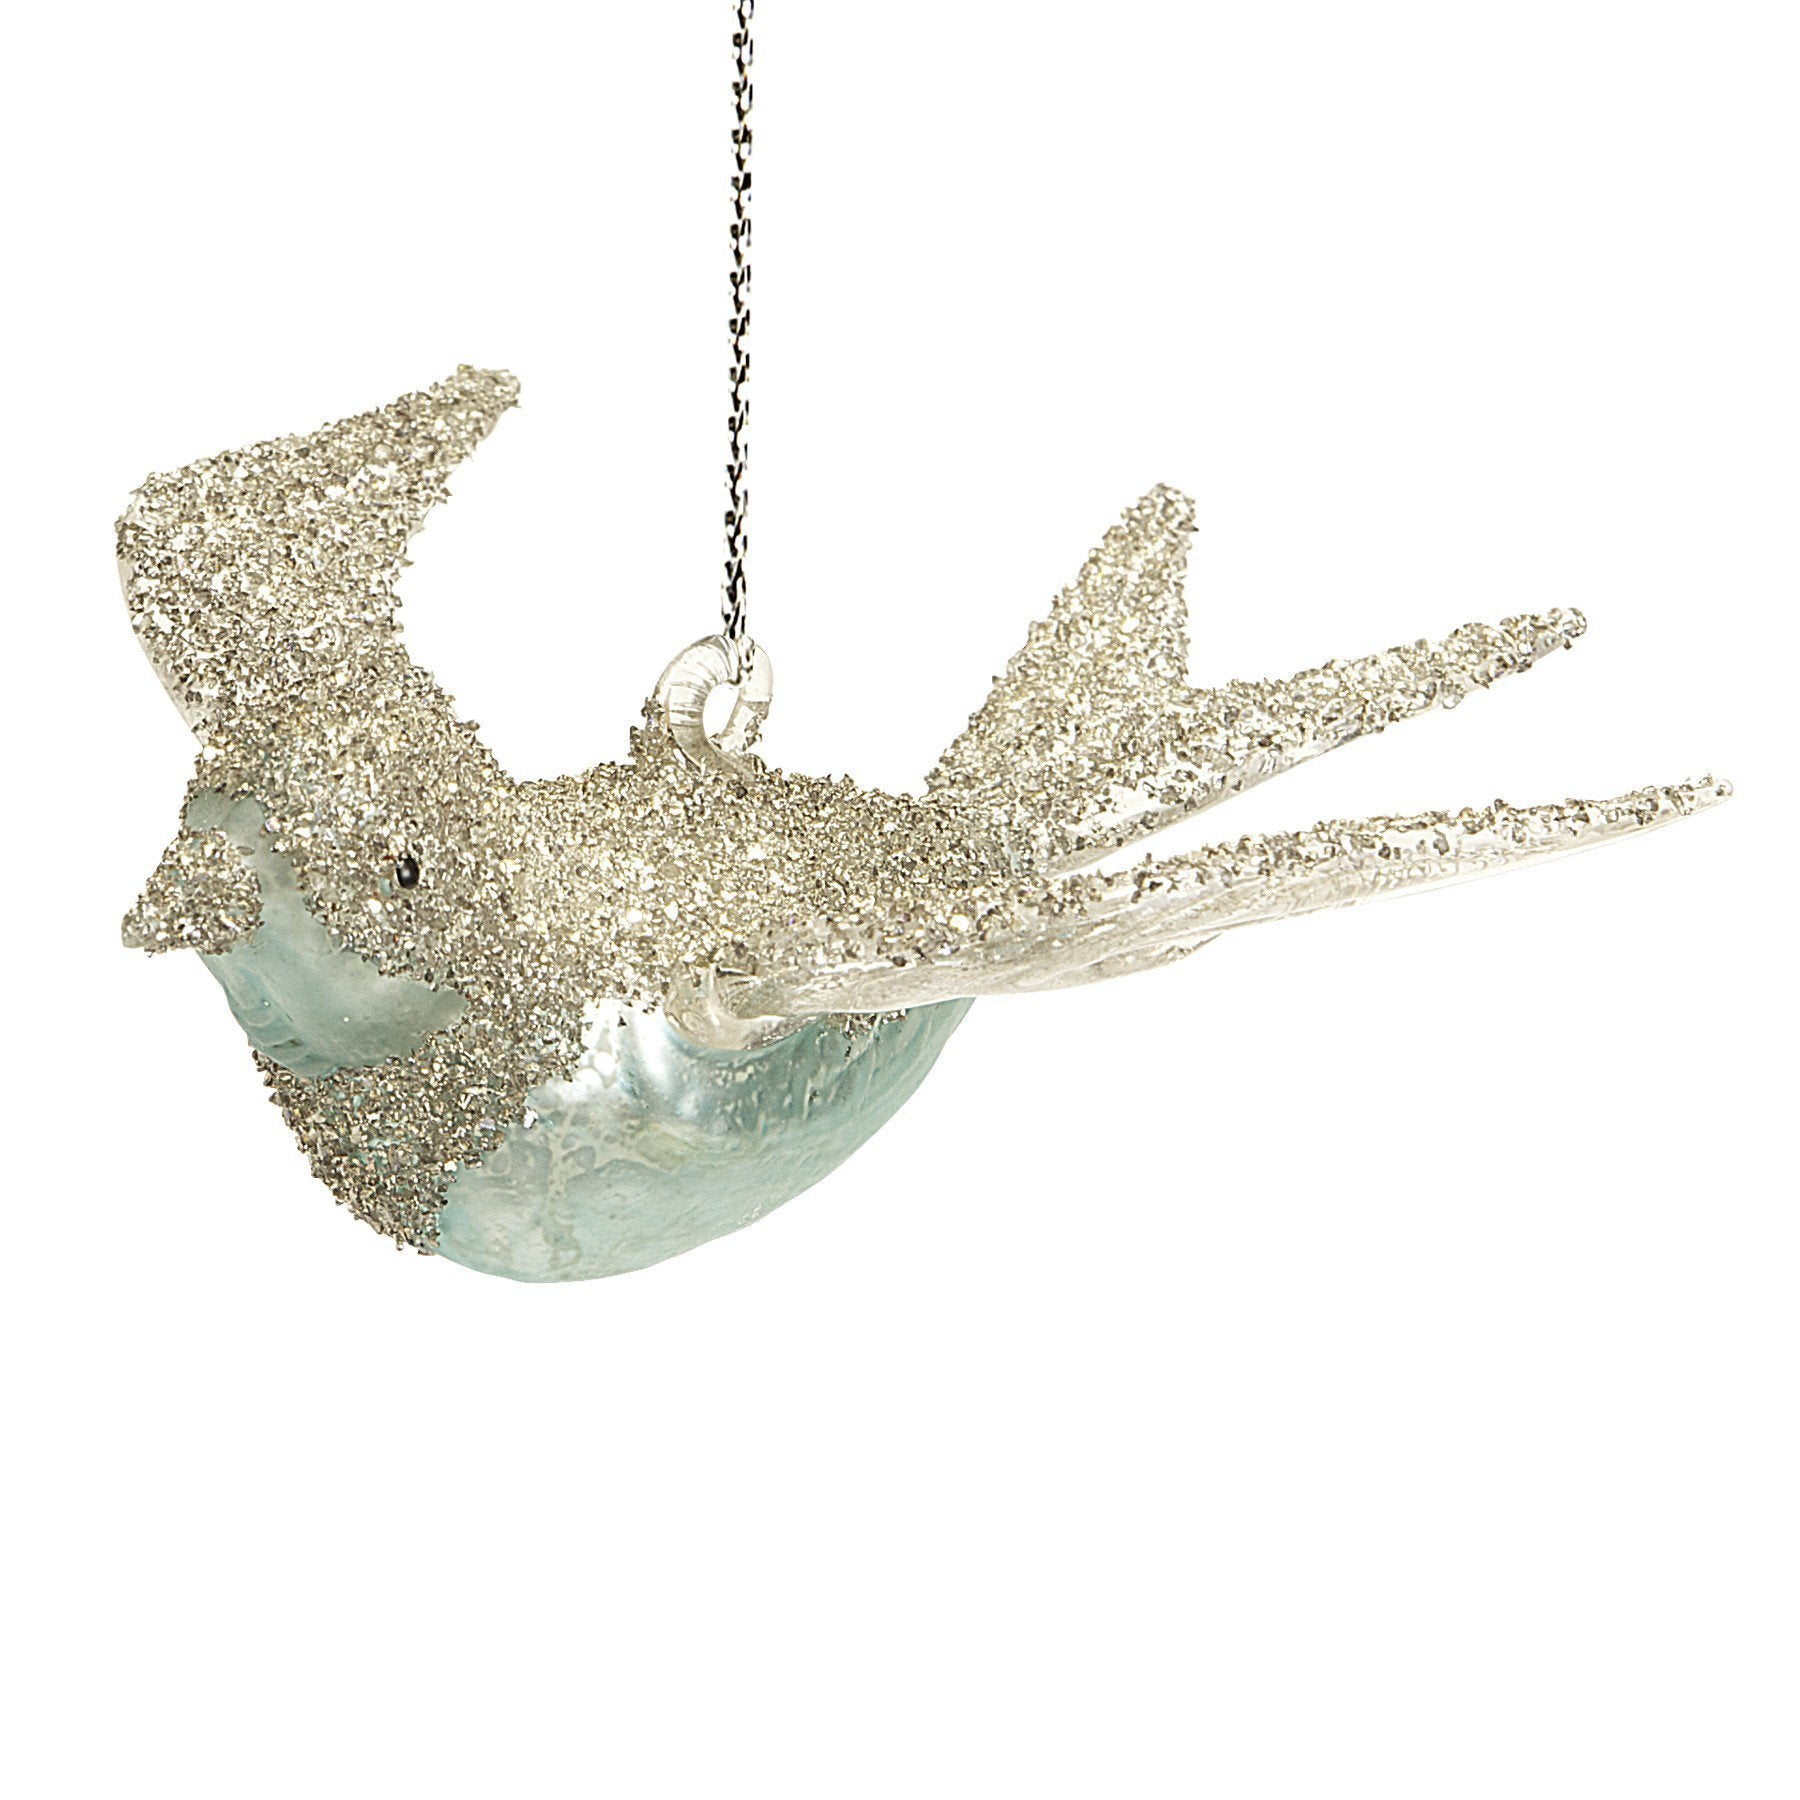 Vintage Turquoise Glass Bird Ornament, AC-Abbott Collection, Putti Fine Furnishings